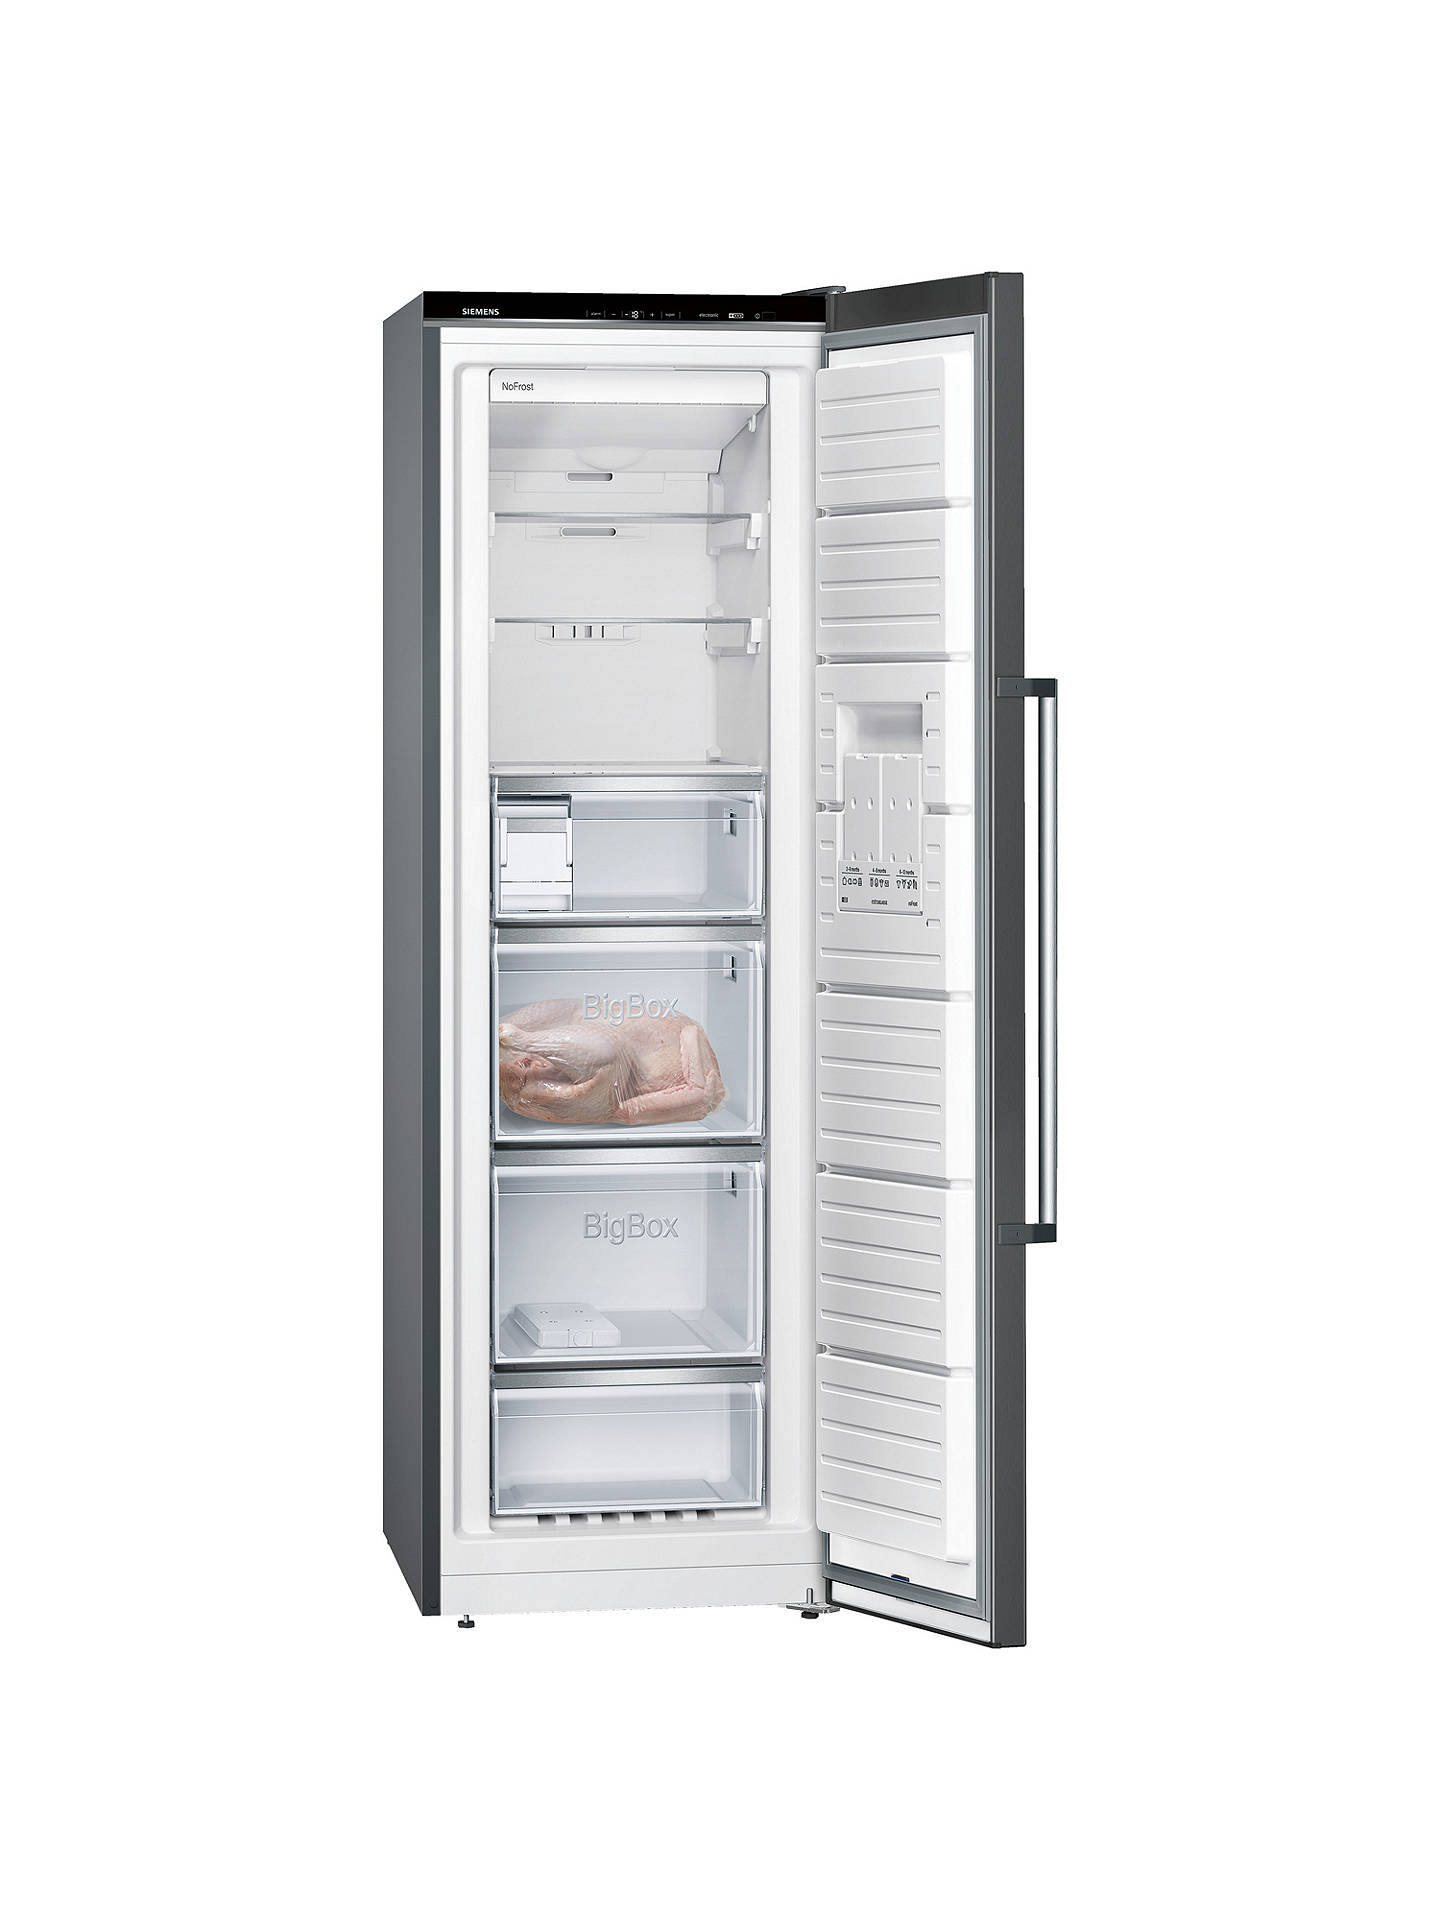 BuySiemens GS36NAX3P Tall Freezer, A++ Energy Rating, 60cm Wide, Black Online at johnlewis.com